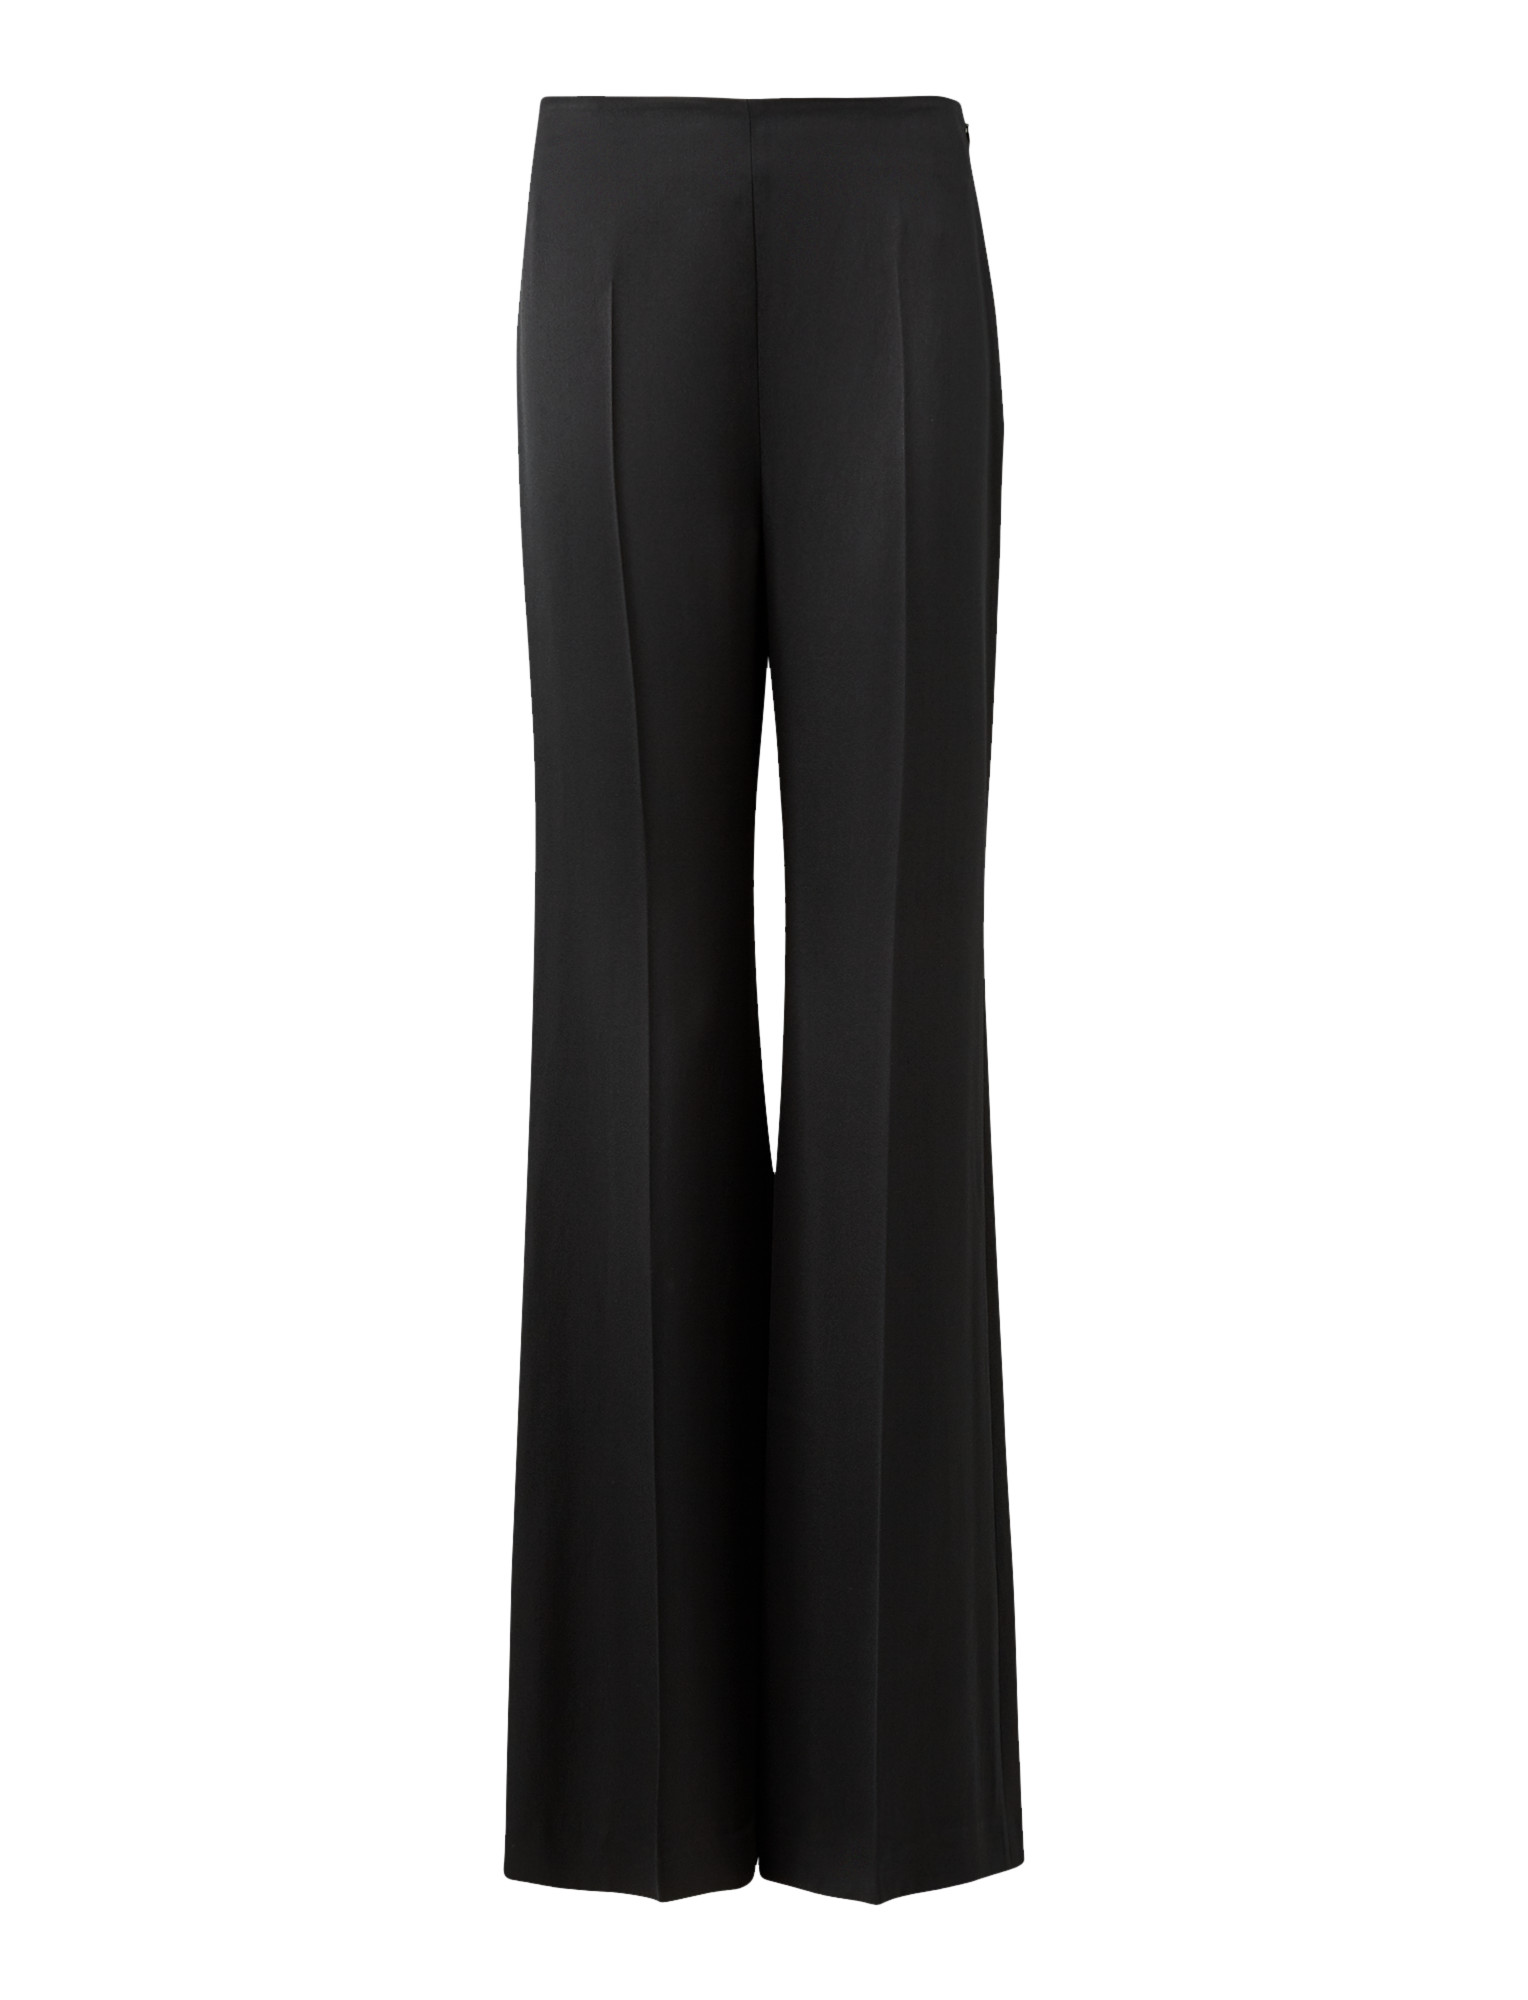 Joseph, Devyn Satin Double Face Trousers, in BLACK